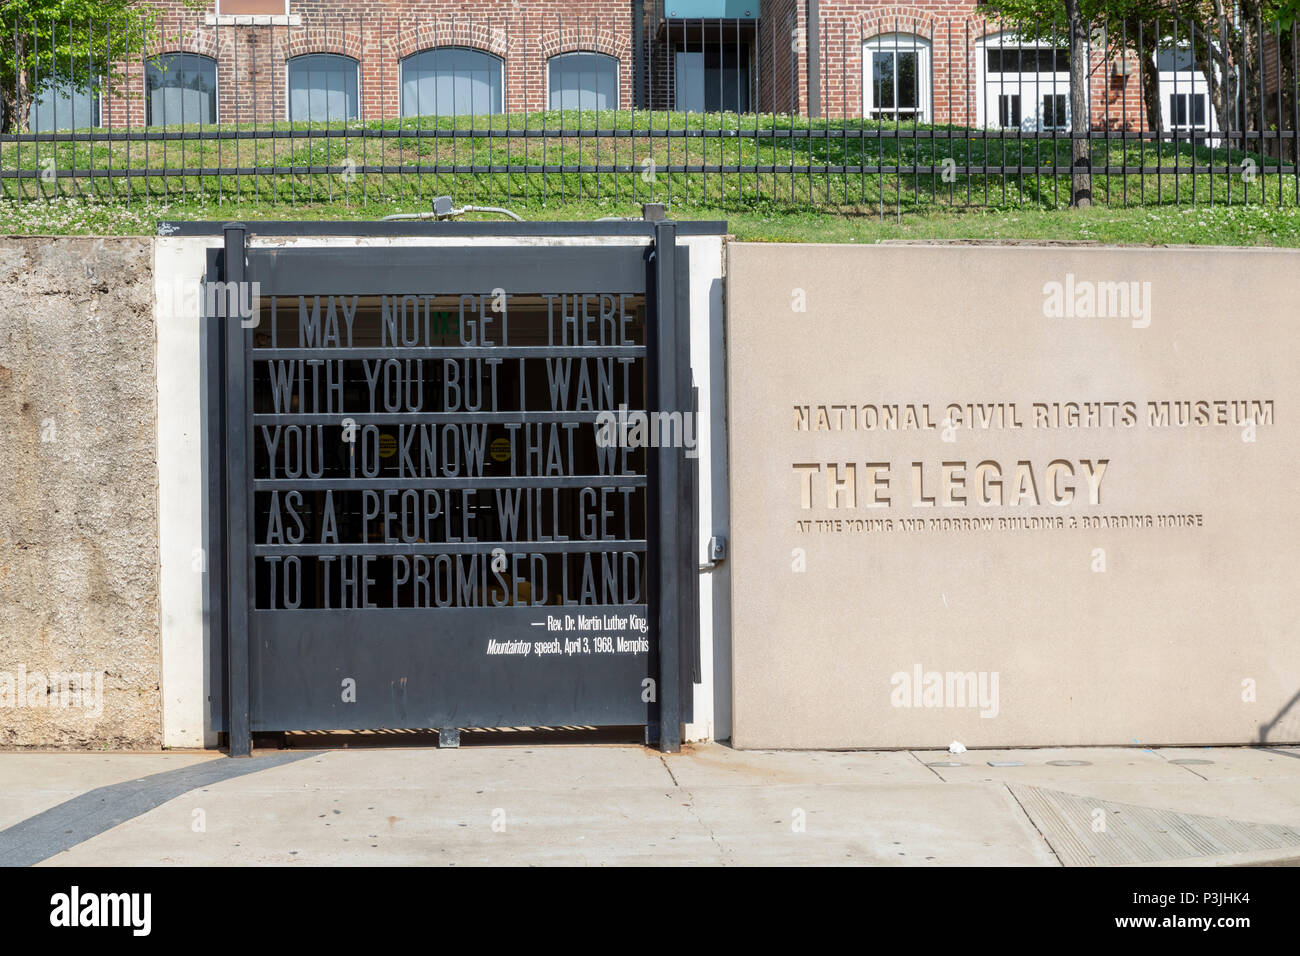 Memphis, Tennessee - The entrance to the Legacy Building, a former